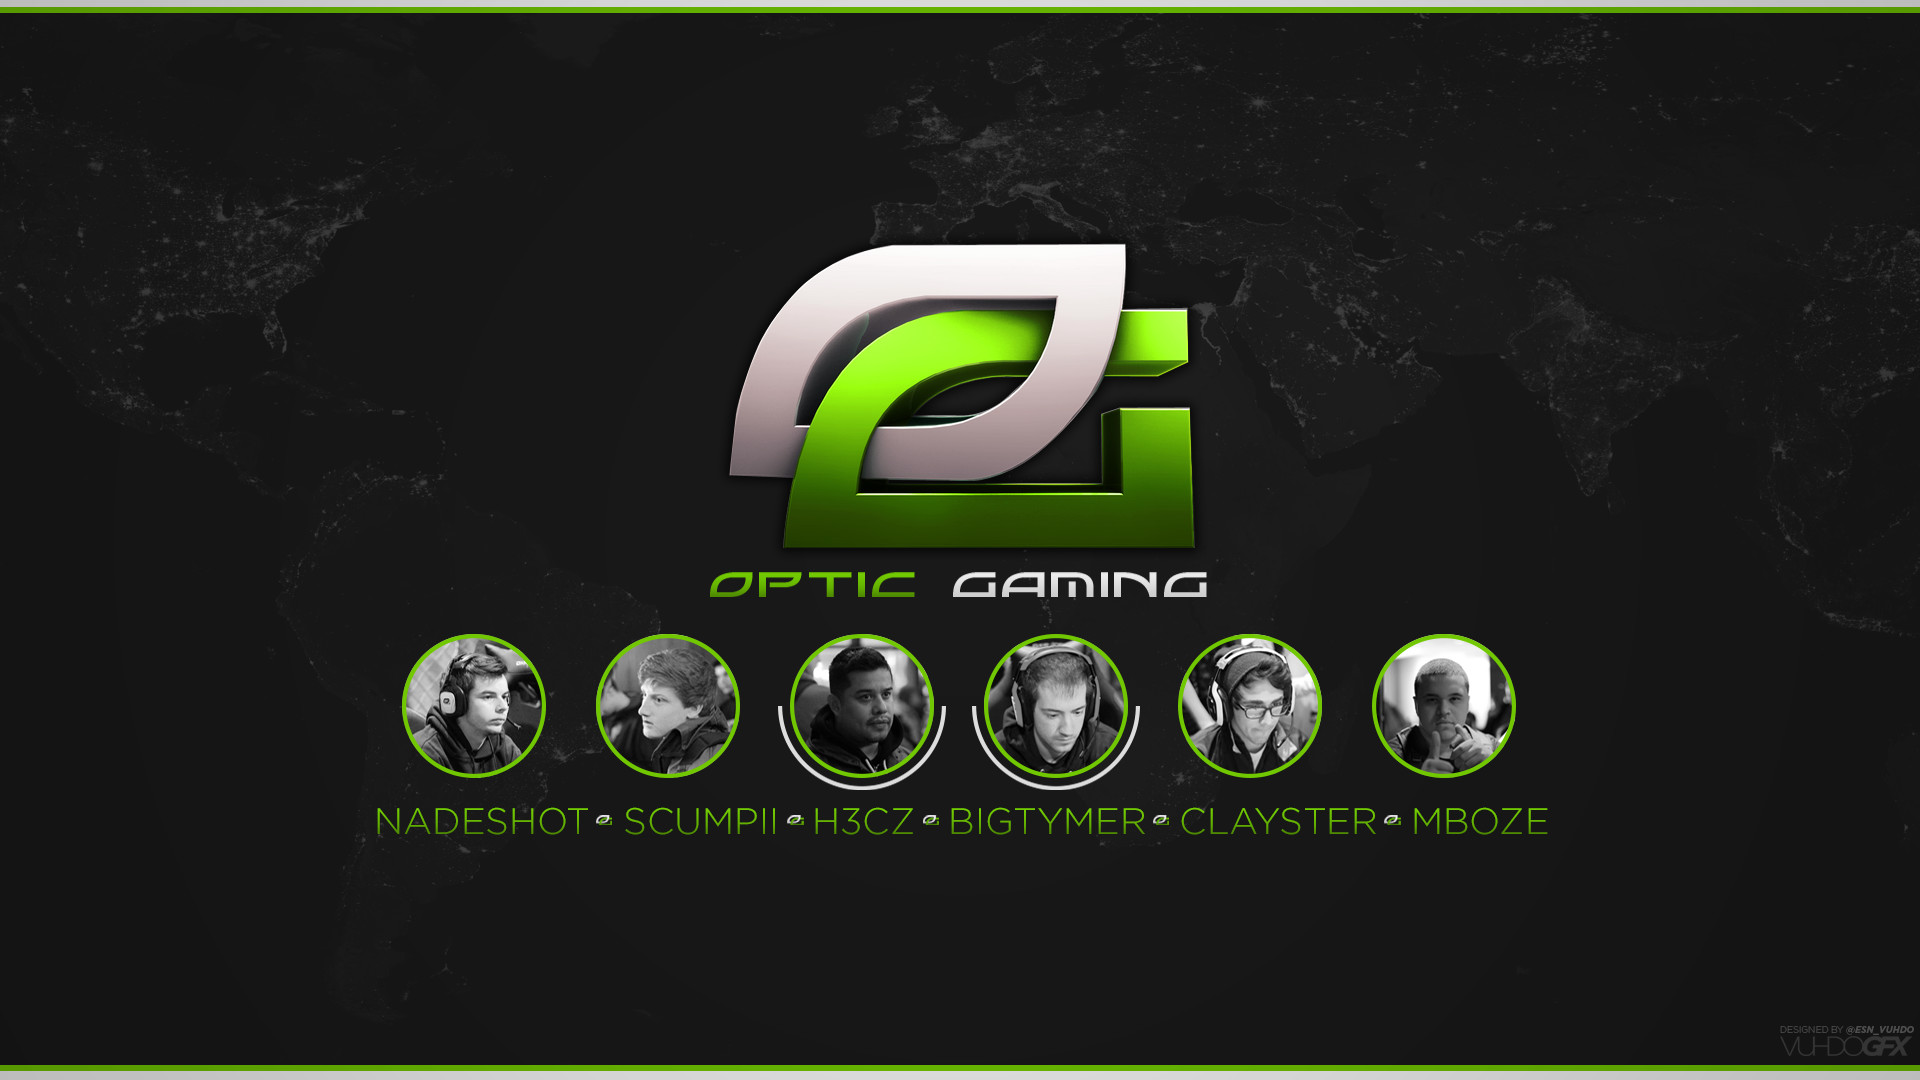 1920x1080 Optic Gaming Wallpapers 2015 . View 0. Heres the link  httpiimgurcomdTm69nlpng